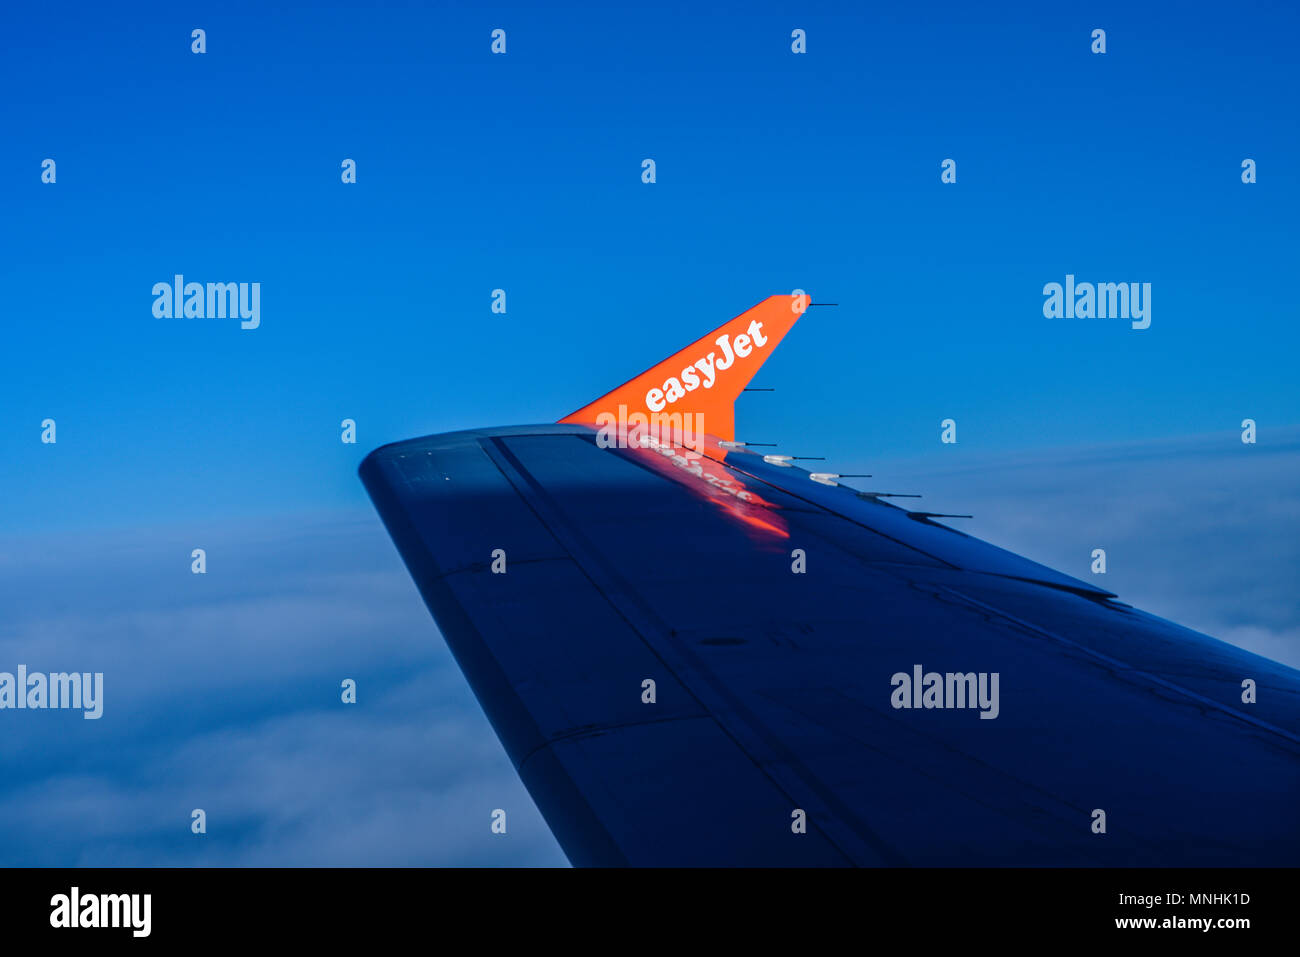 easyJet letering logo on jet plane wingtip winglet at dawn picked out by rising sun. Wing in shadow. Above clouds in blue sky. Airline, airliner - Stock Image